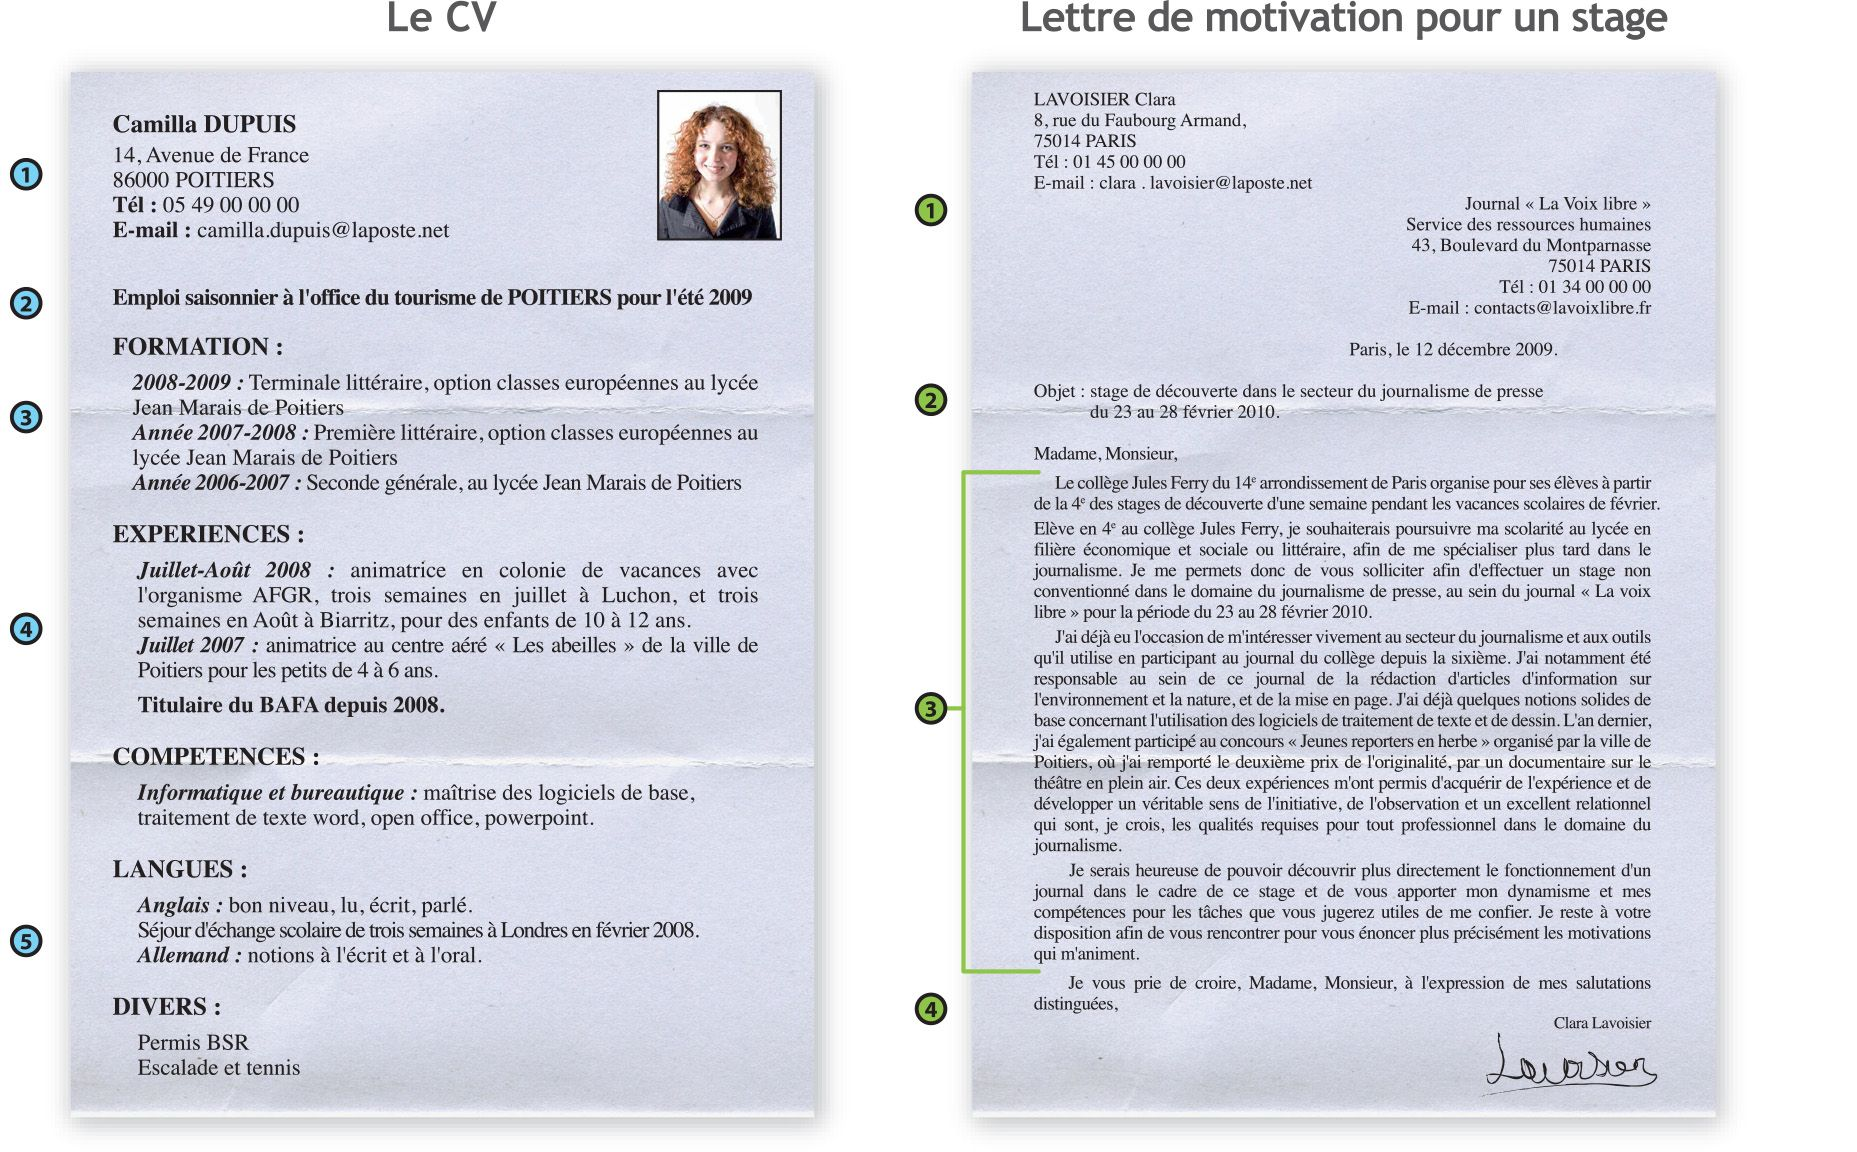 mail motivation cv plus lettre